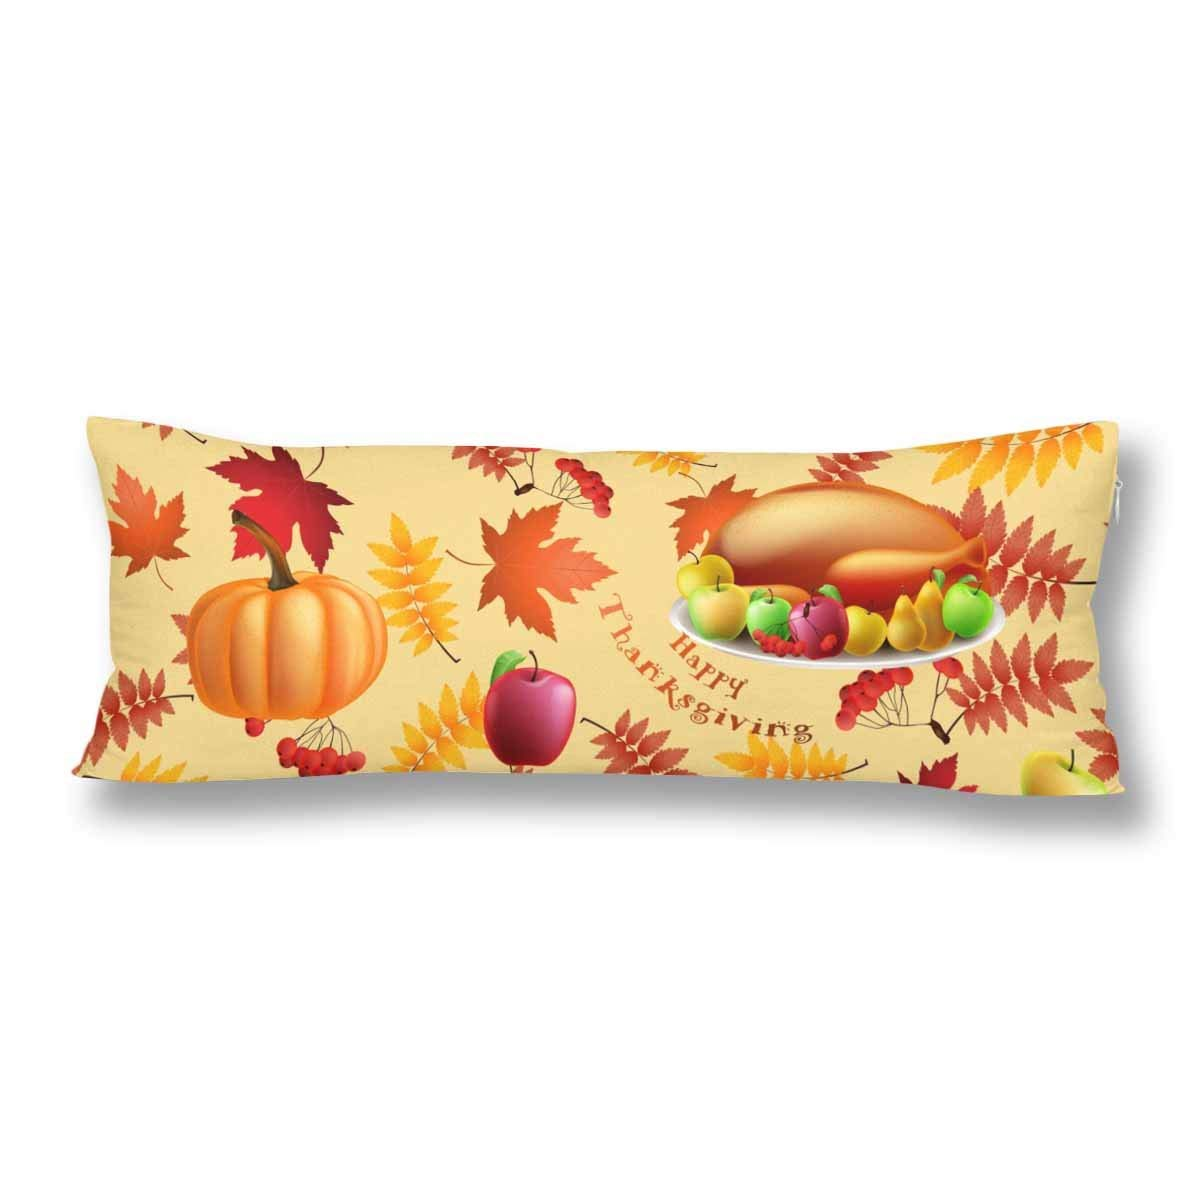 ABPHOTO Fall Thanksgiving Harvest Body Pillow Covers Pillowcase 20x60 inch Autumn Turkey Pumpkin Maple Leaf Body Pillow Case Protector